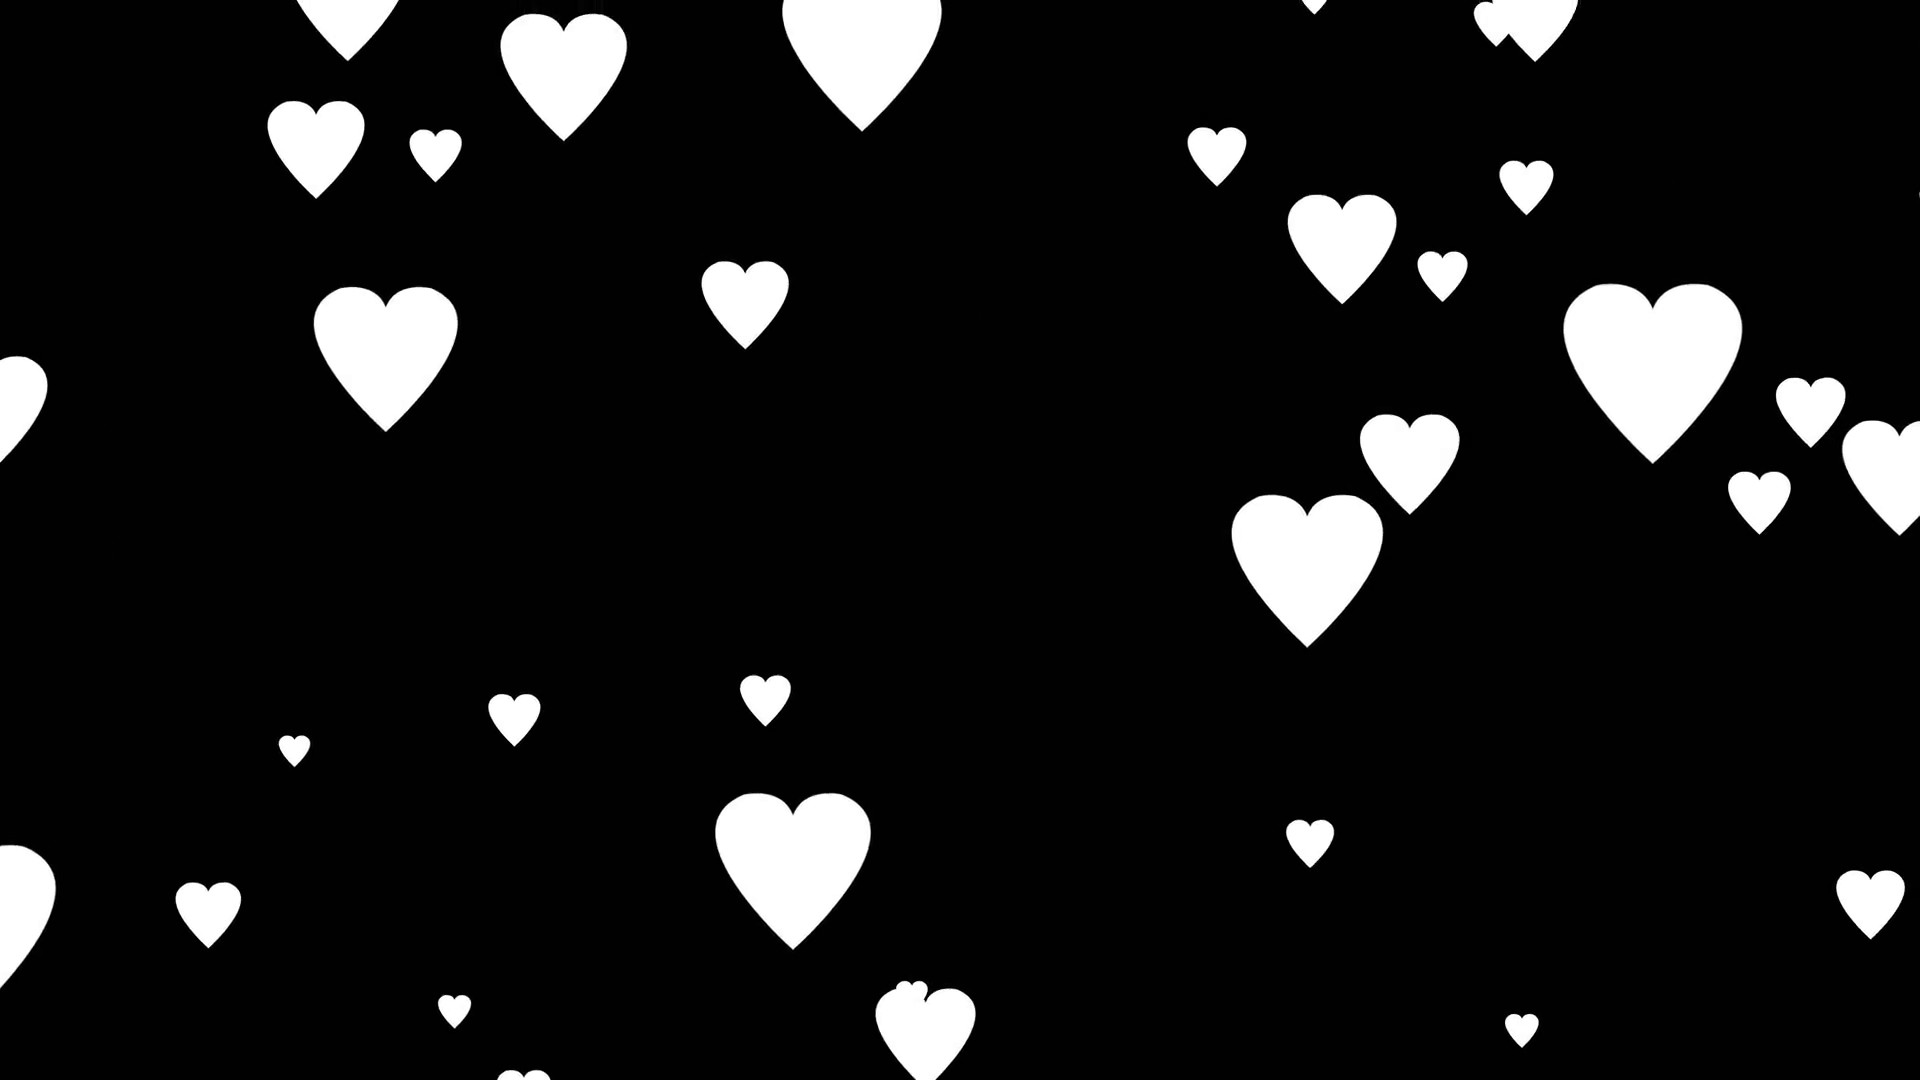 hearts with black background 52 images